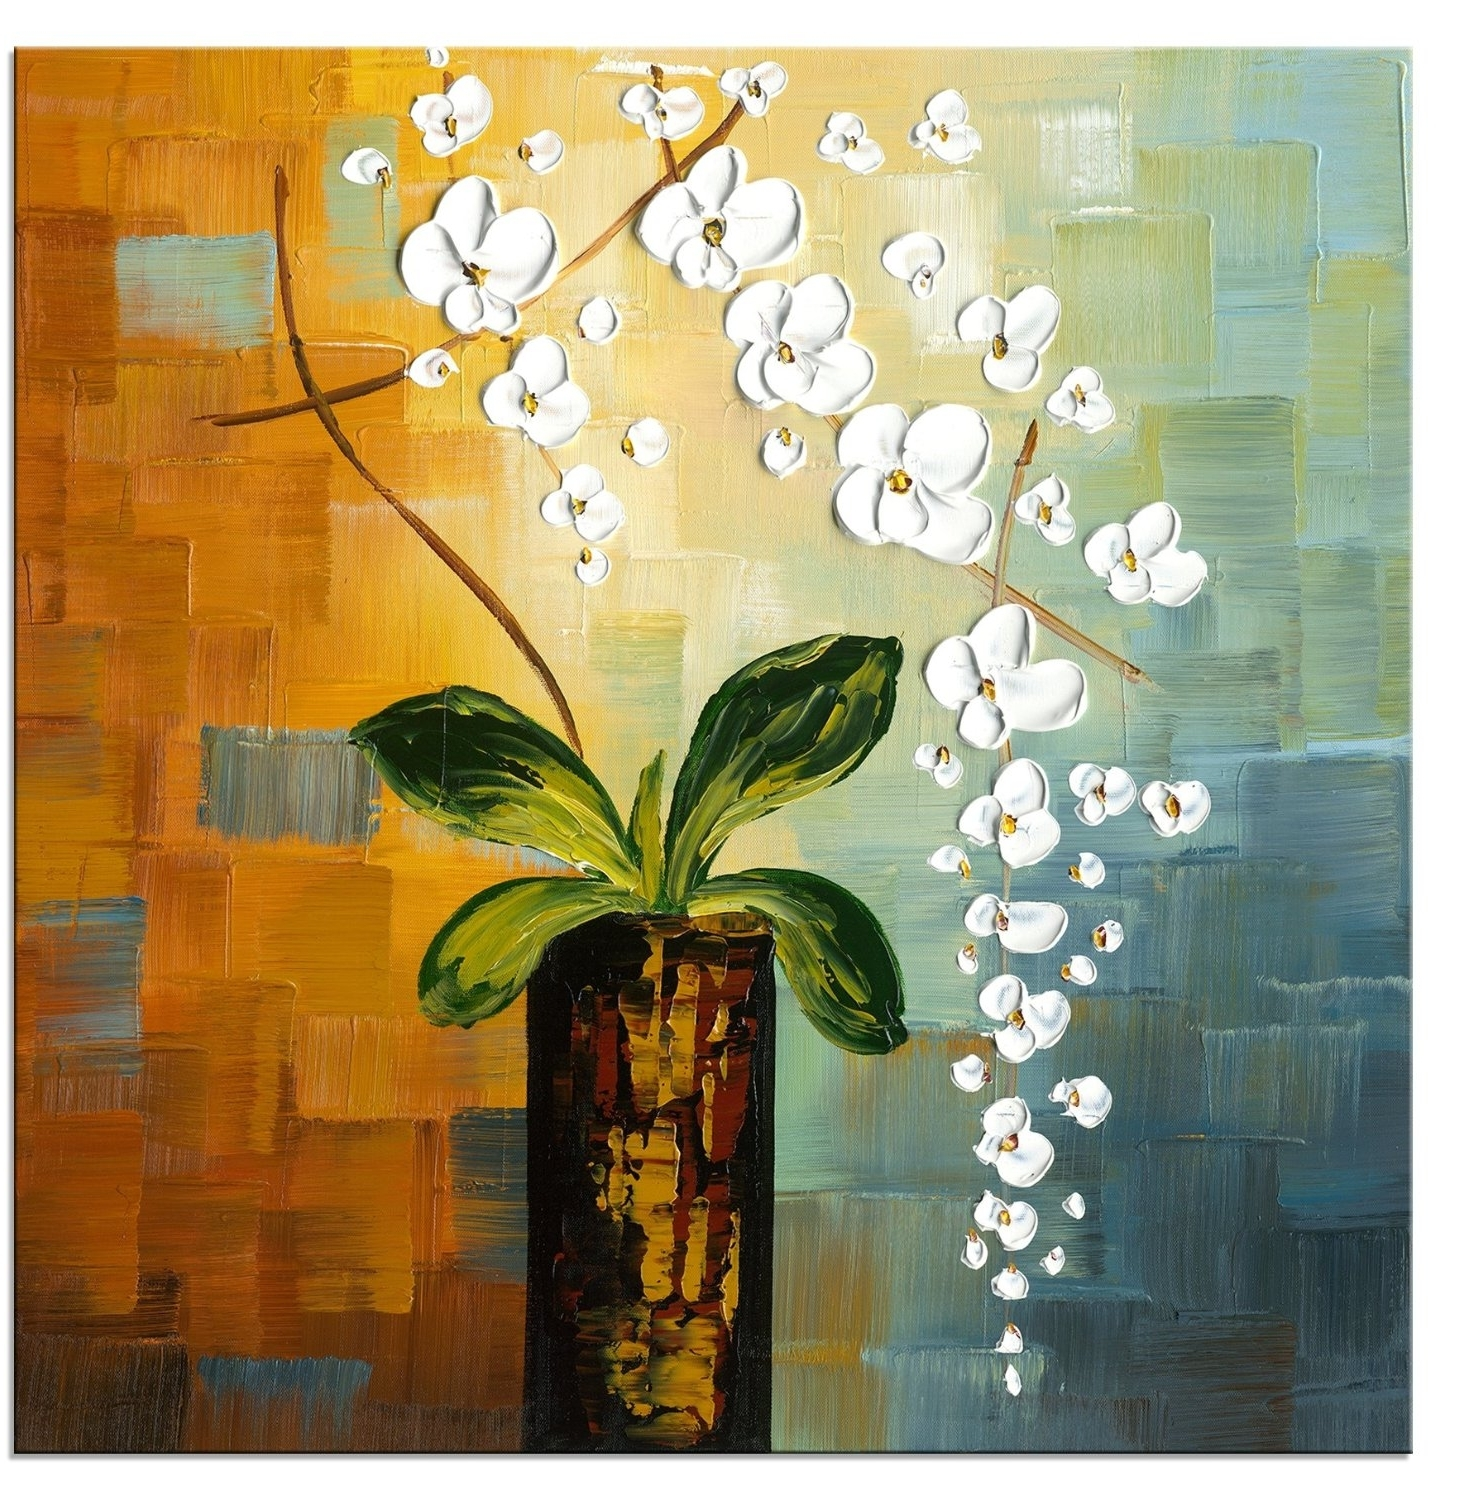 Modern Painting Canvas Wall Art Intended For Most Recent Beauty Of Life Modern Canvas Art Wall Decor Floral Oil Painting Wall (View 10 of 20)